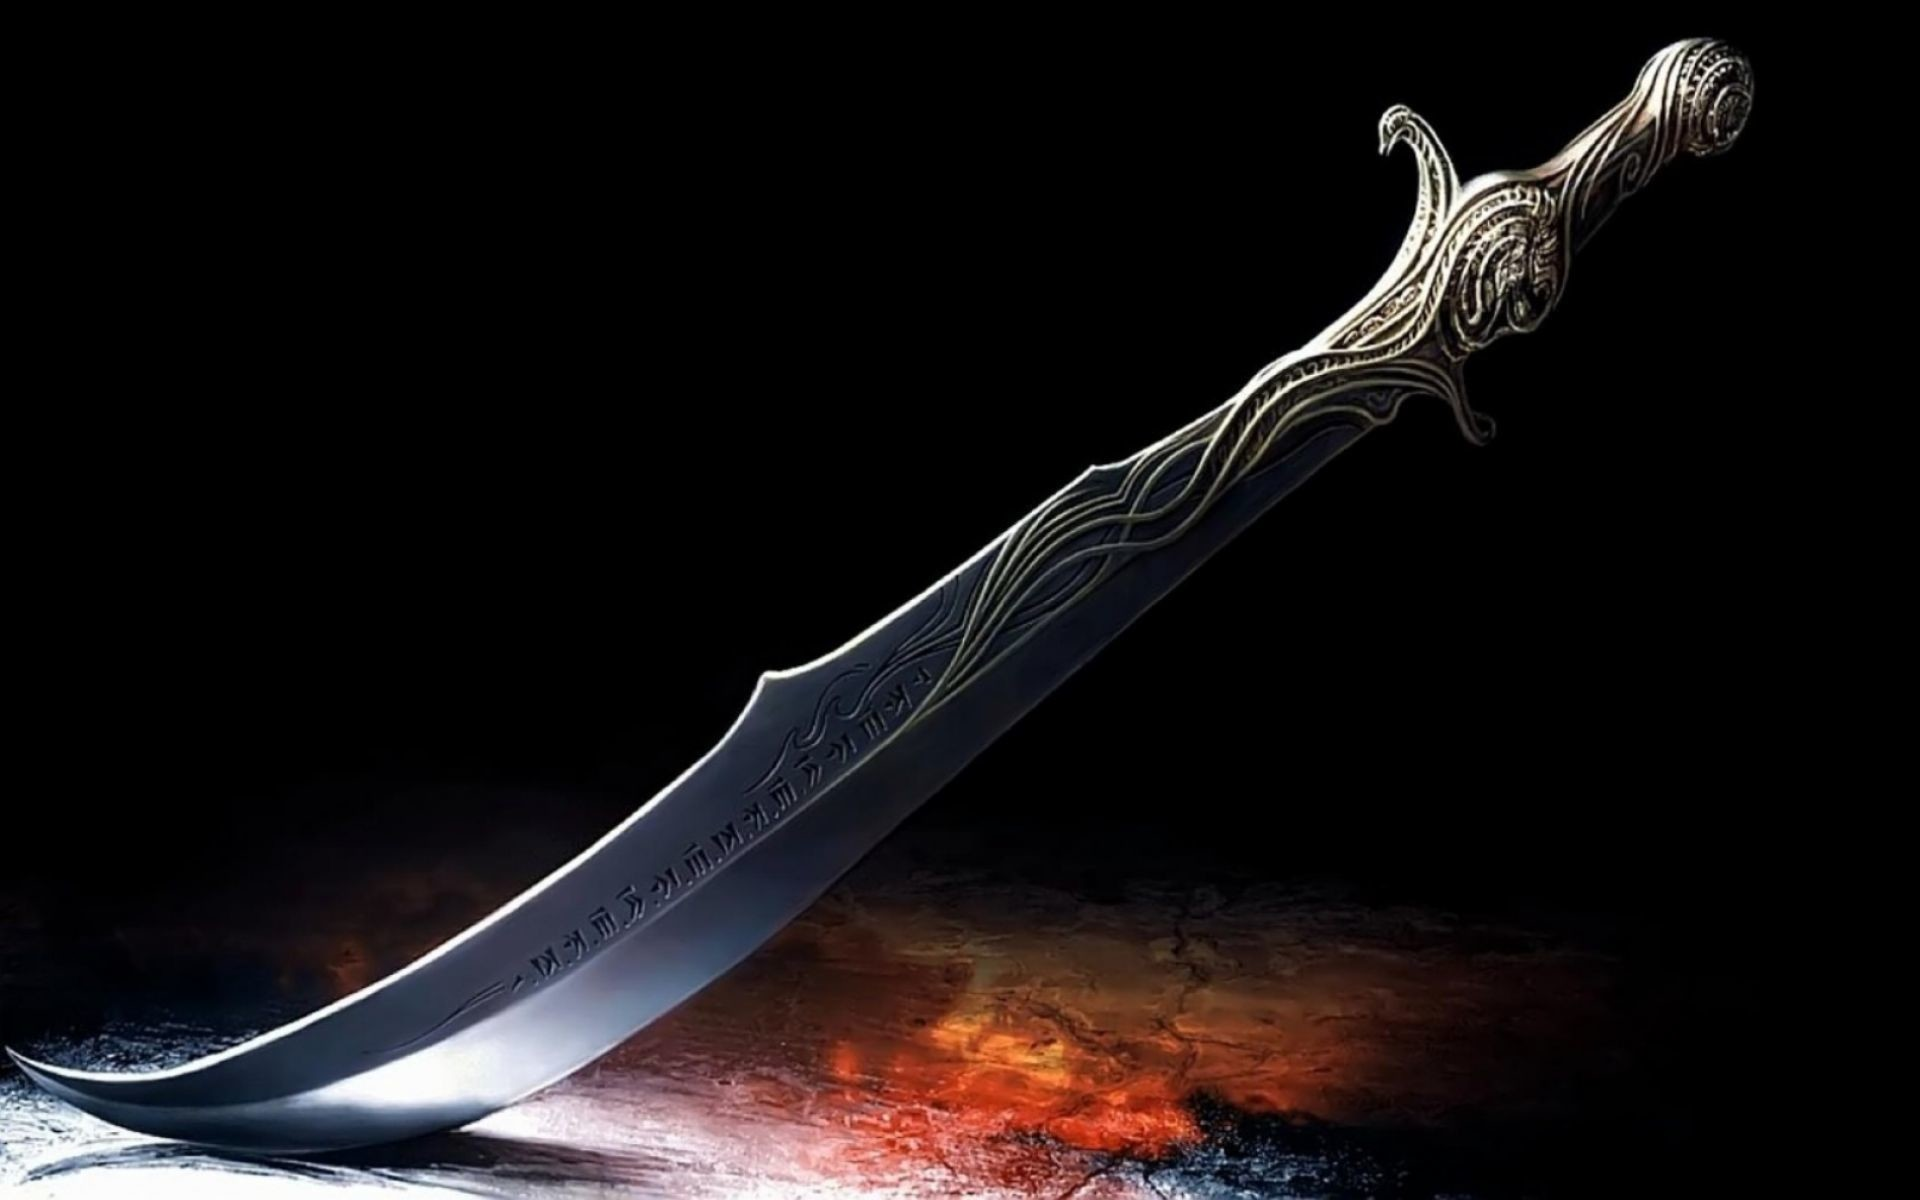 1920x1200 3D Hindu Sword With Fire Wallpaper | HD 3D and Abstract Wallpaper Free  Download ...